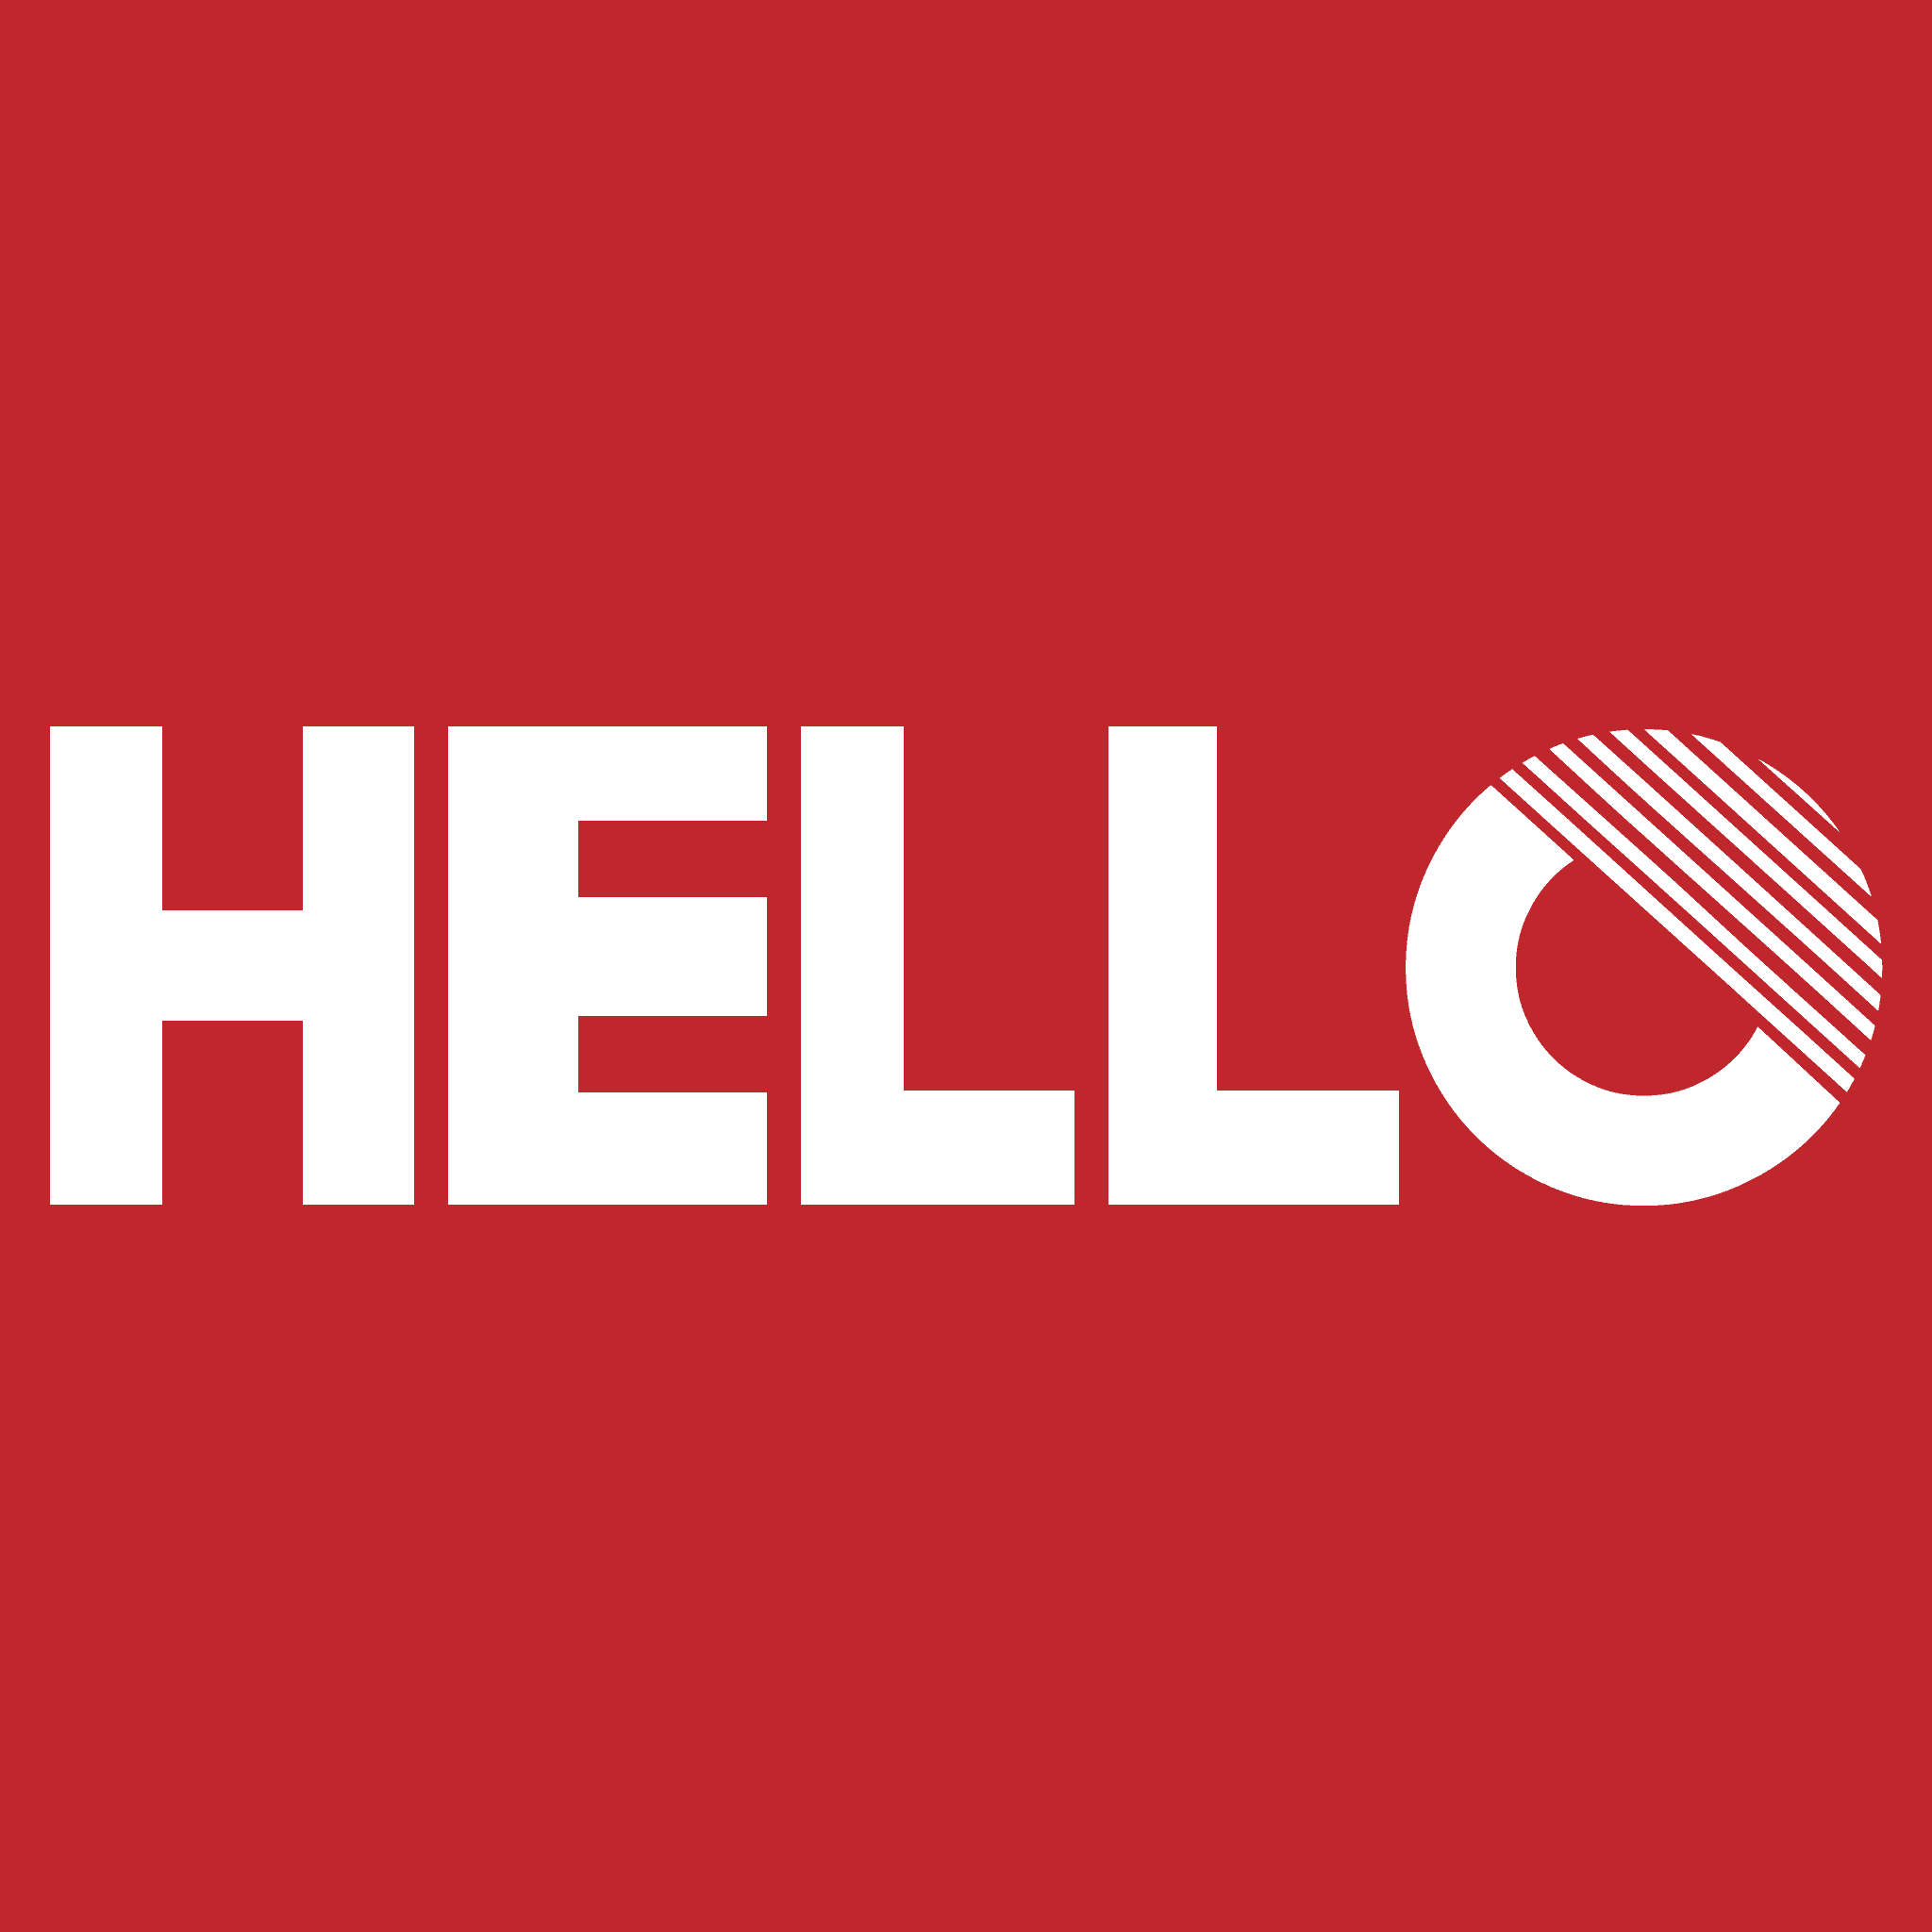 Hello-intro-ig